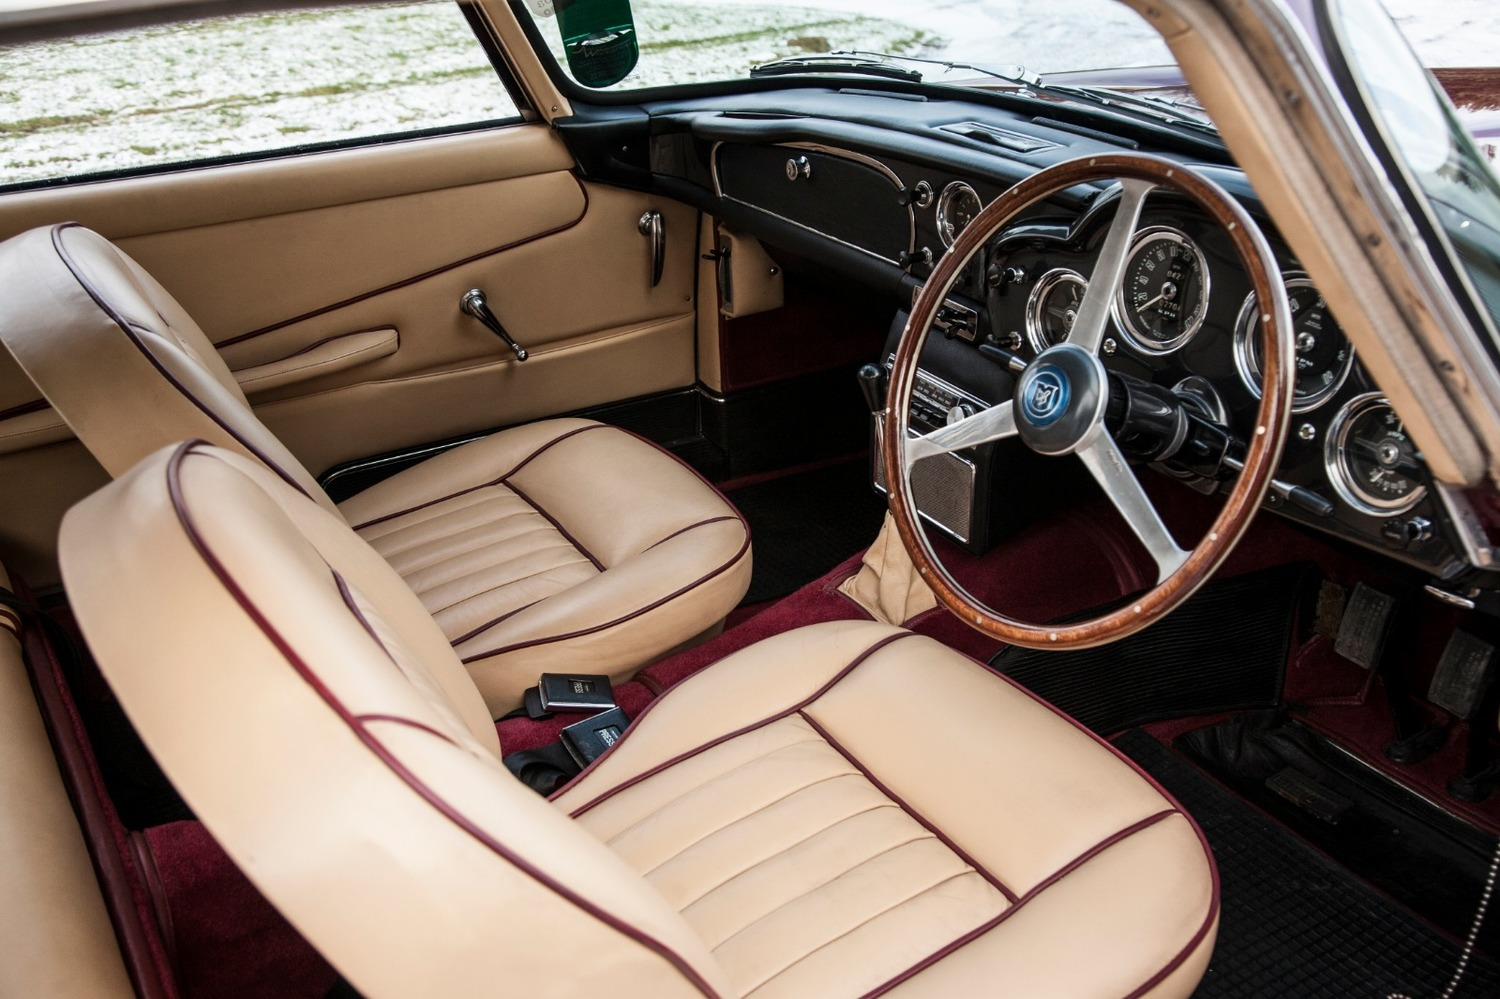 Db4 Series 2 Saloon 1960 For Sale From The Aston Workshop